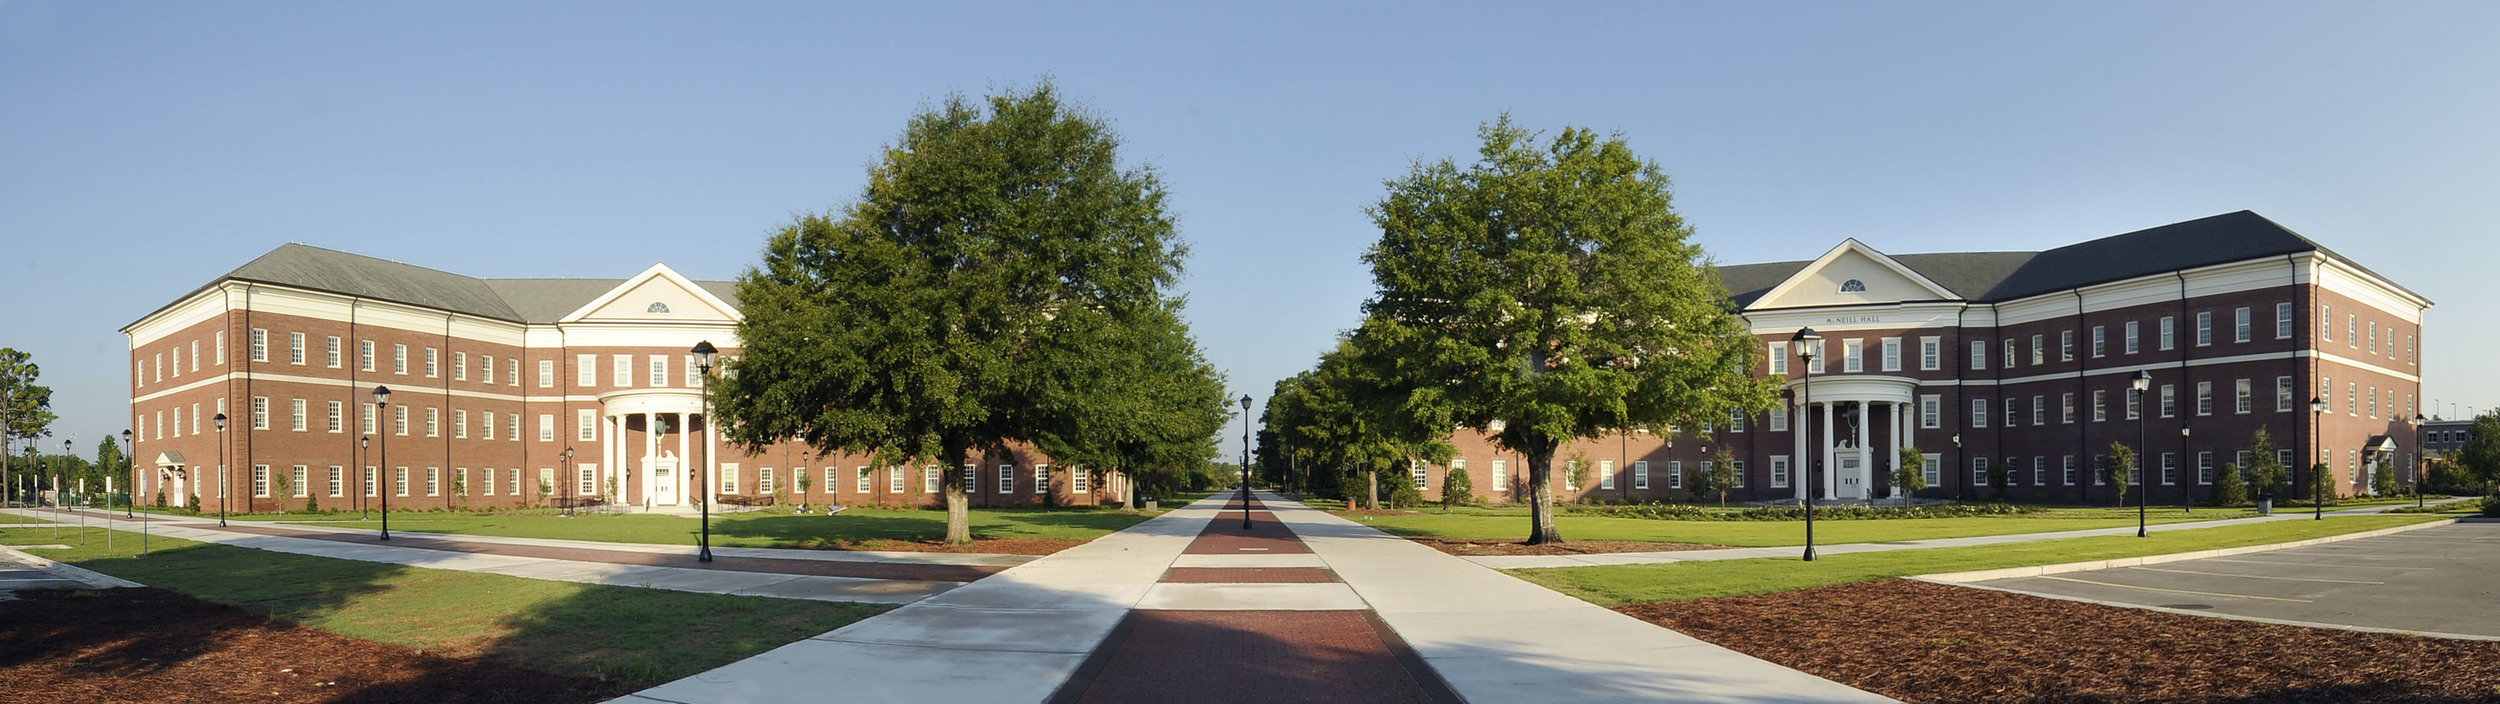 New Teaching Laboratory Building (left) and McNeill Hall, School of Nursing -Health Quad - UNC Wilmington campus - building exterior architecture.  Chancellor's Walk - UNCW / Jamie Moncrief